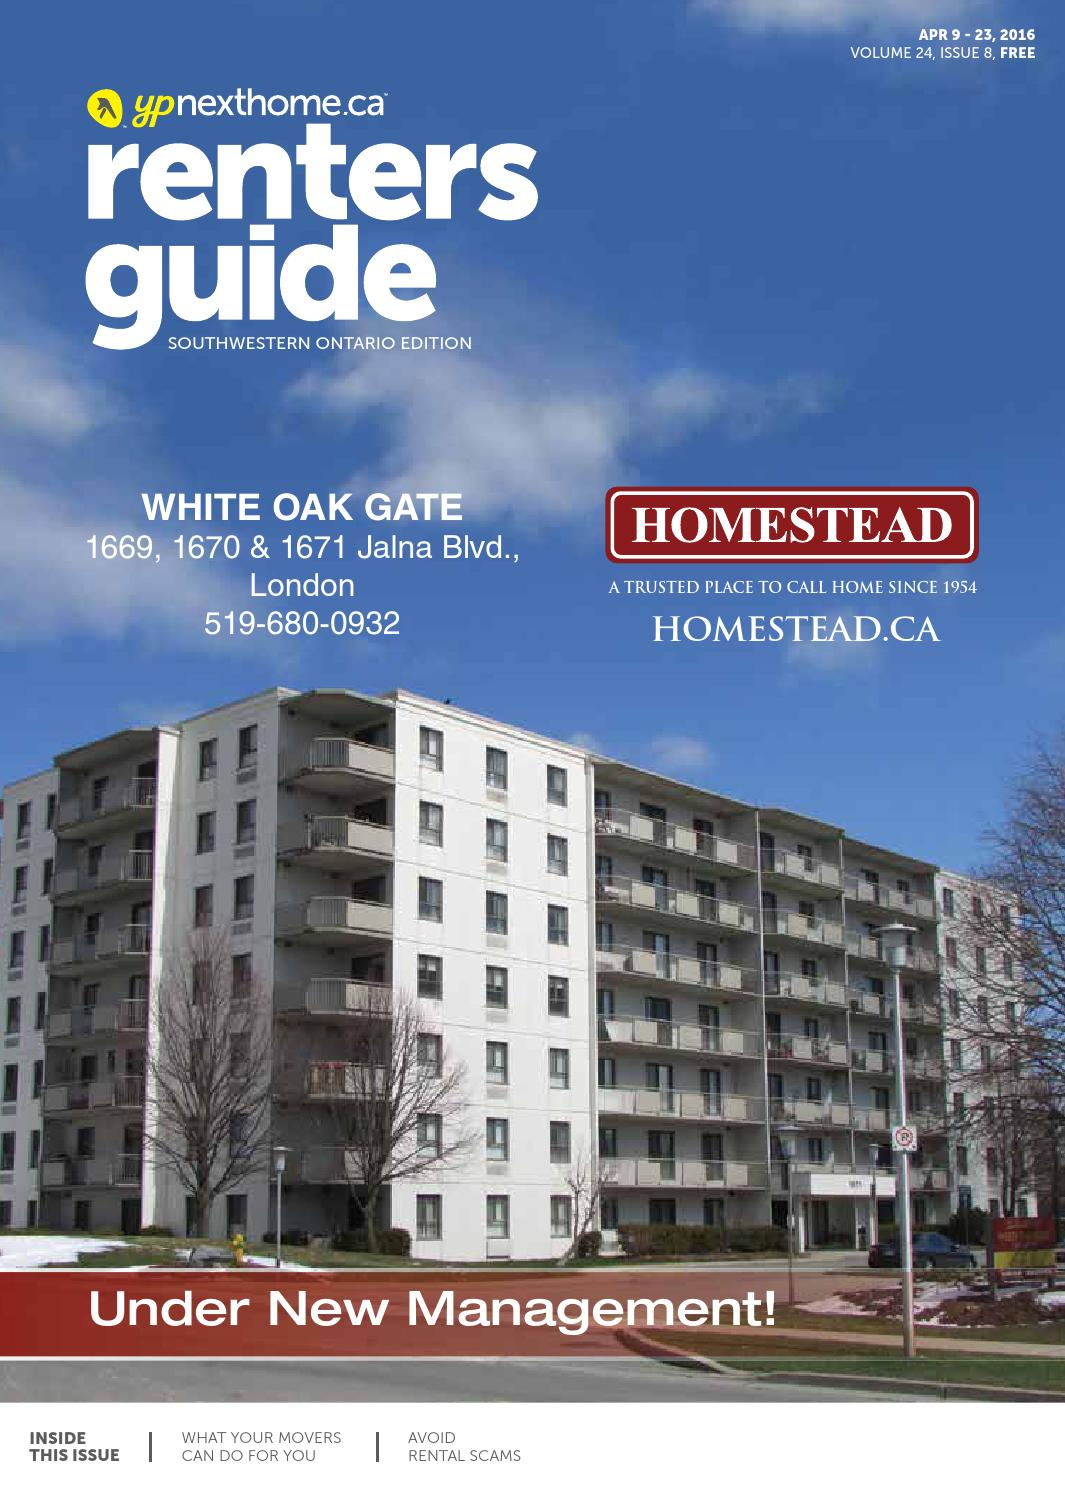 Southwestern Ontario Renters Guide - 9 Apr, 2016 by NextHome - issuu